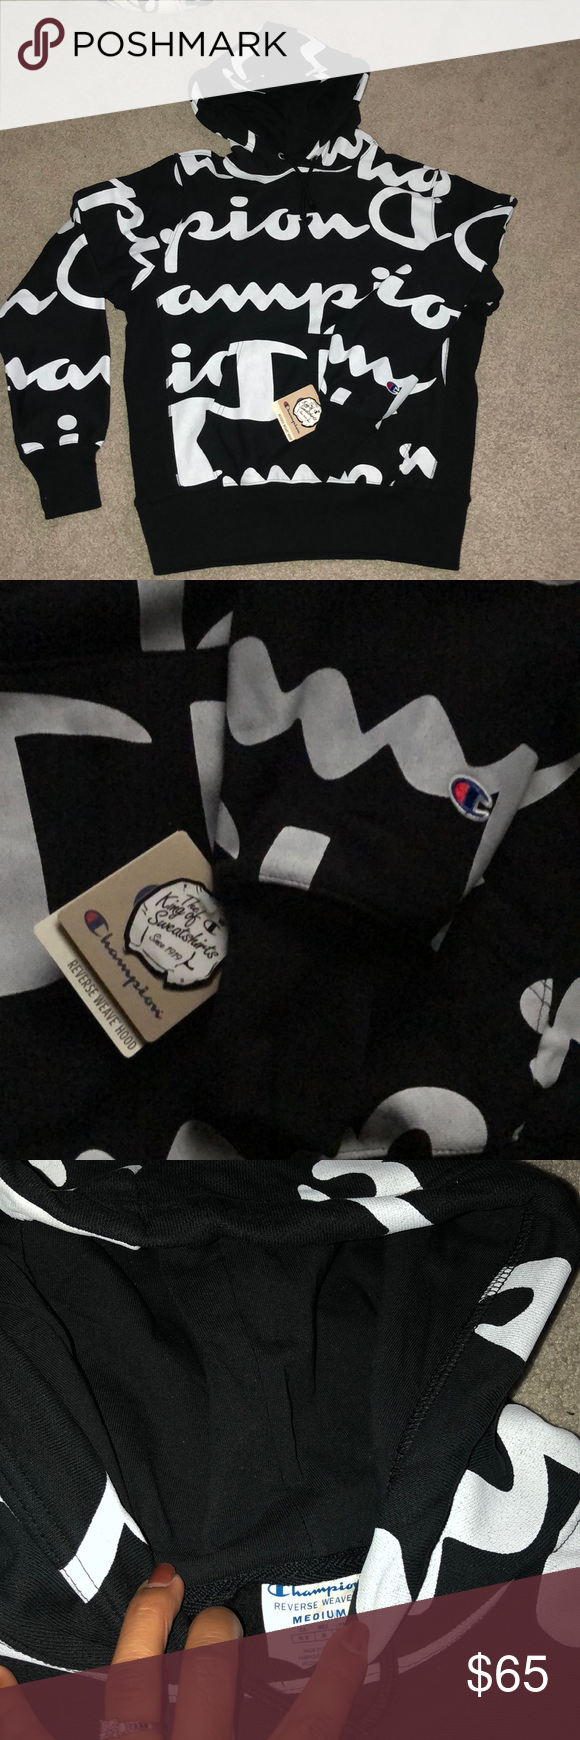 nwt champion hoodie ready to ship  size medium  black with white writing  i have other items bundle up for a deal !!! Champion Sweaters #championhoodie